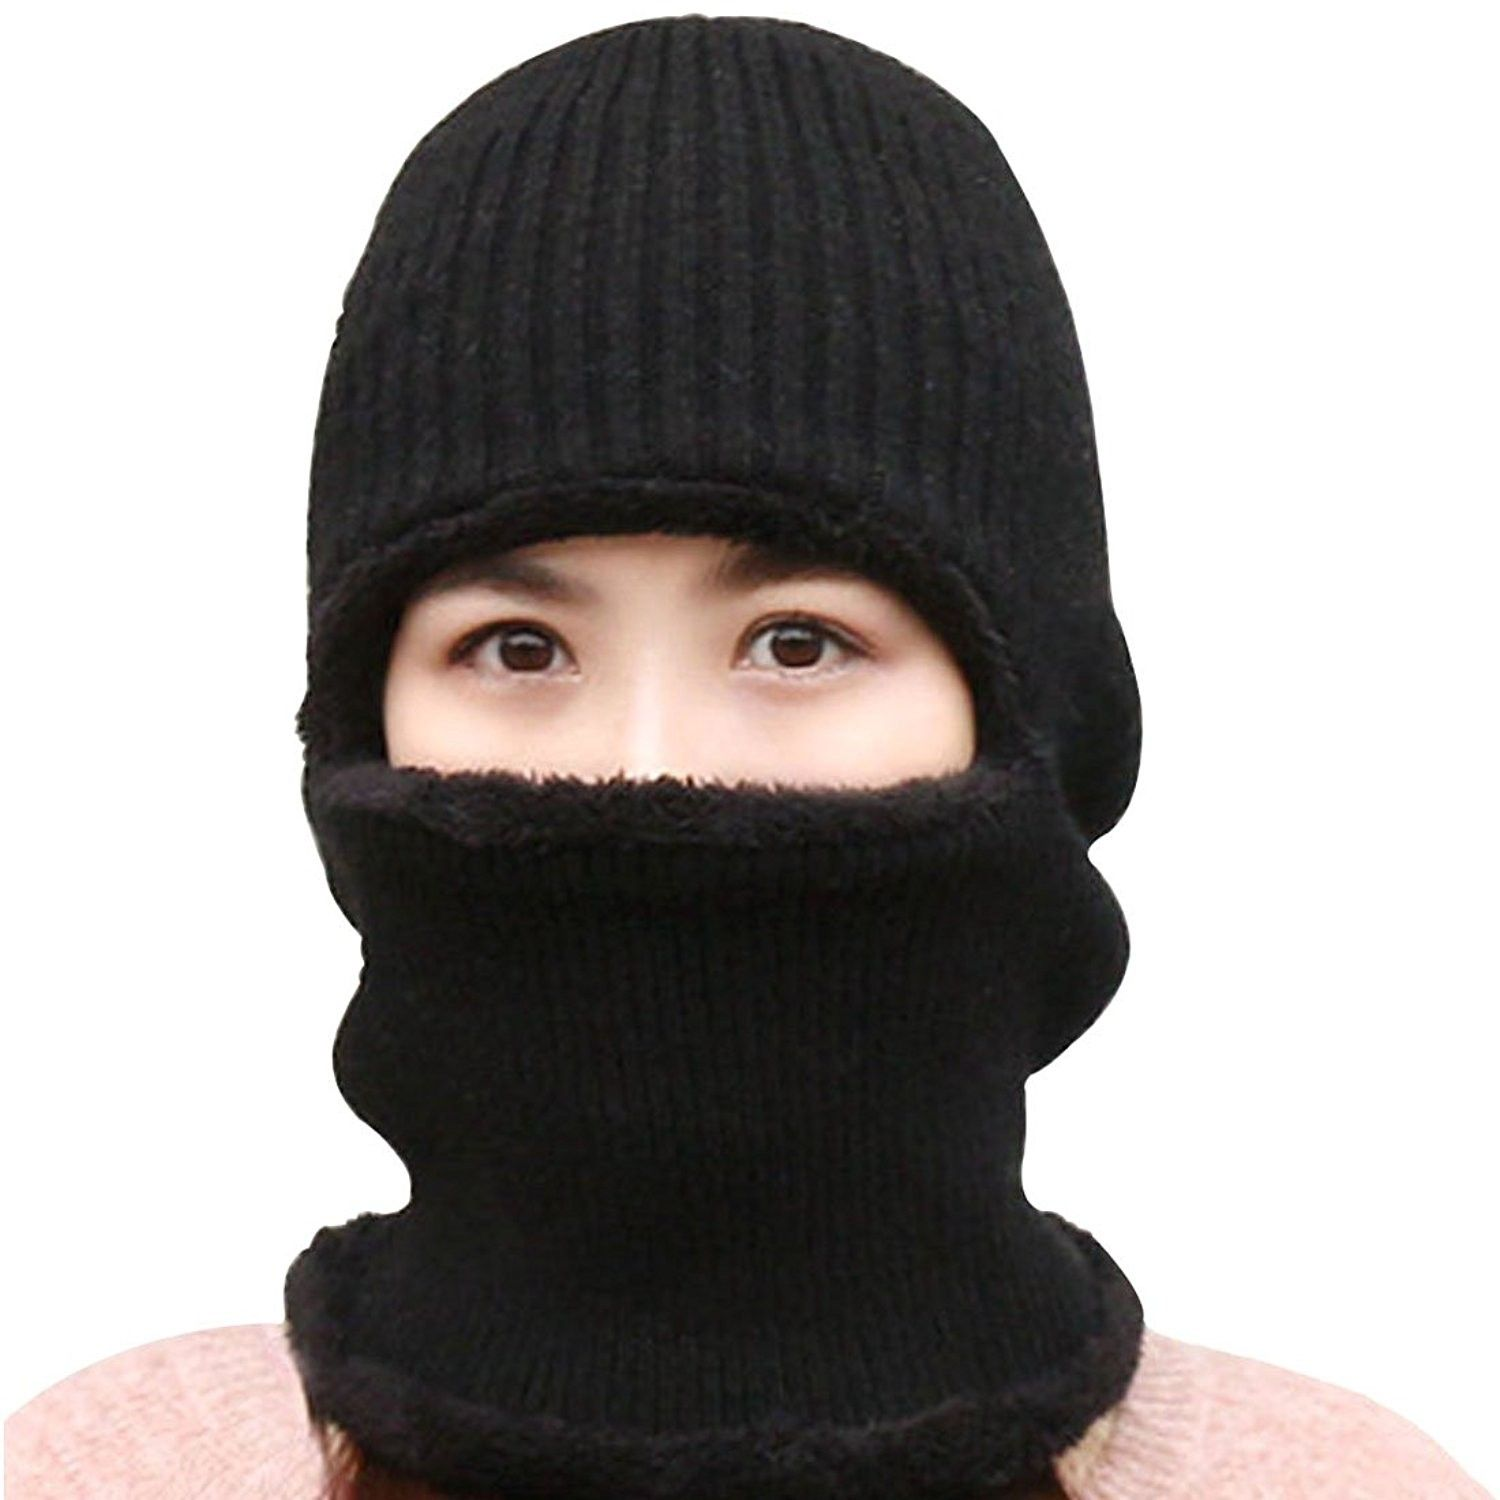 145ea55a12a Womens Knitted Beanie Hat Warm Windproof Ski Face Mask Winter Hats - Black  - CK186OL89H5 - Hats   Caps